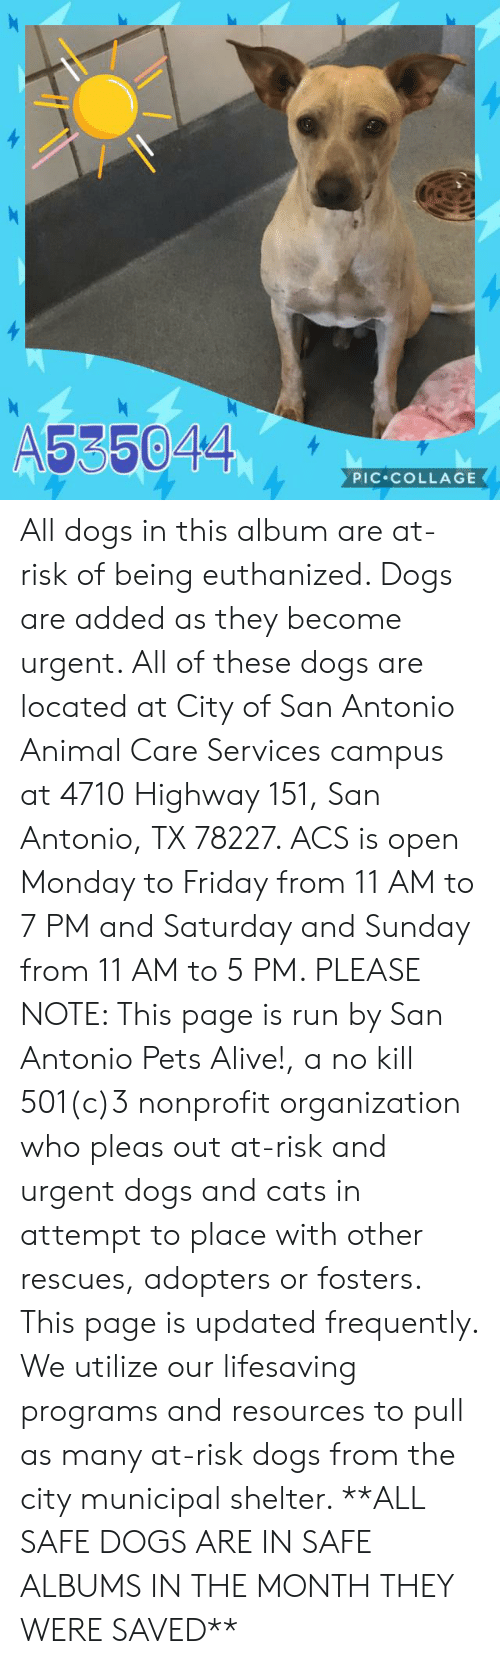 Alive, Cats, and Dogs: A535044  PIC COLLAGE All dogs in this album are at-risk of being euthanized.  Dogs are added as they become urgent.  All of these dogs are located at City of San Antonio Animal Care Services campus at 4710 Highway 151, San Antonio, TX 78227. ACS is open Monday to Friday from 11 AM to 7 PM and Saturday and Sunday from 11 AM to 5 PM.   PLEASE NOTE: This page is run by San Antonio Pets Alive!, a no kill 501(c)3 nonprofit organization who pleas out at-risk and urgent dogs and cats in attempt to place with other rescues, adopters or fosters.   This page is updated frequently.  We utilize our lifesaving programs and resources to pull as many at-risk dogs from the city municipal shelter. **ALL SAFE DOGS ARE IN SAFE ALBUMS IN THE MONTH THEY WERE SAVED**